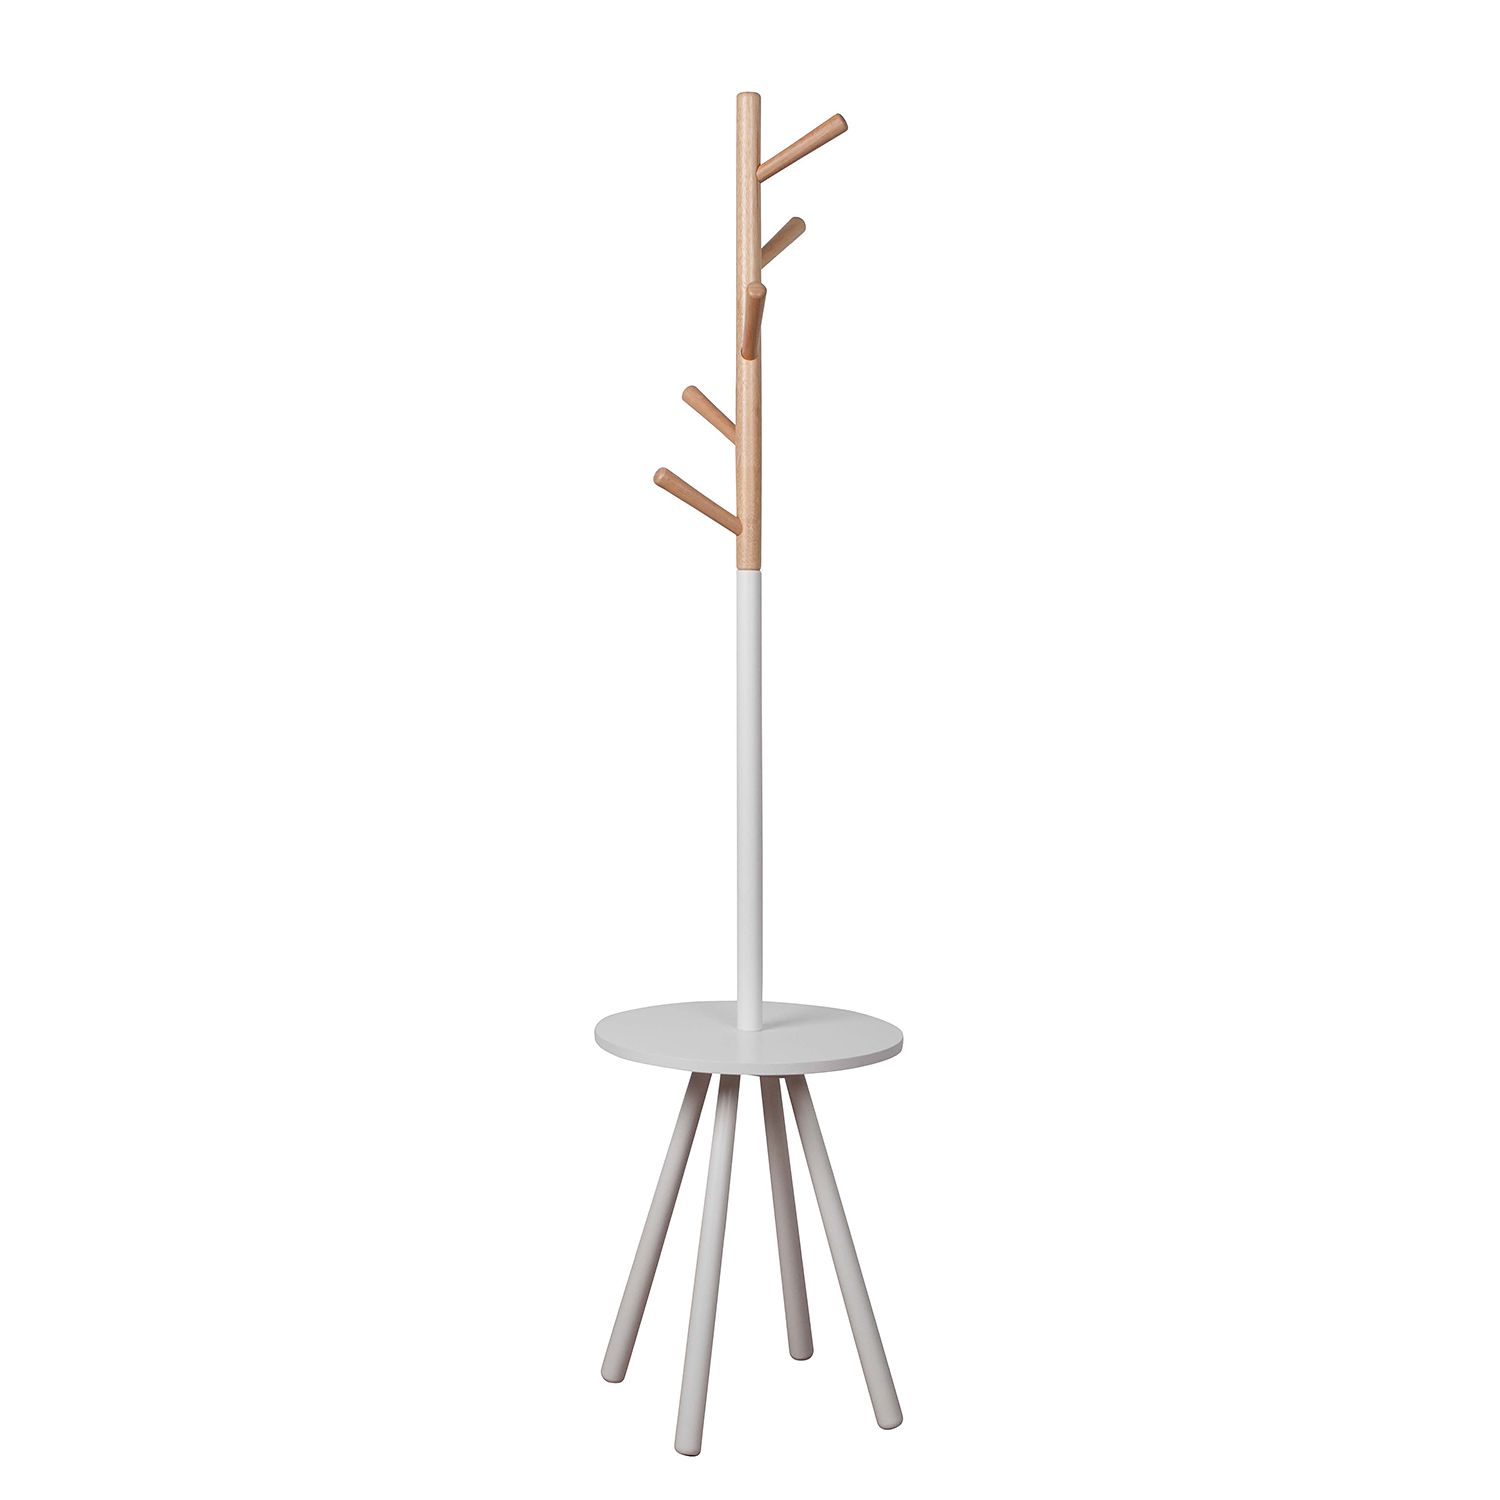 Home 24 - Porte manteau table tree - blanc / beige, zuiver